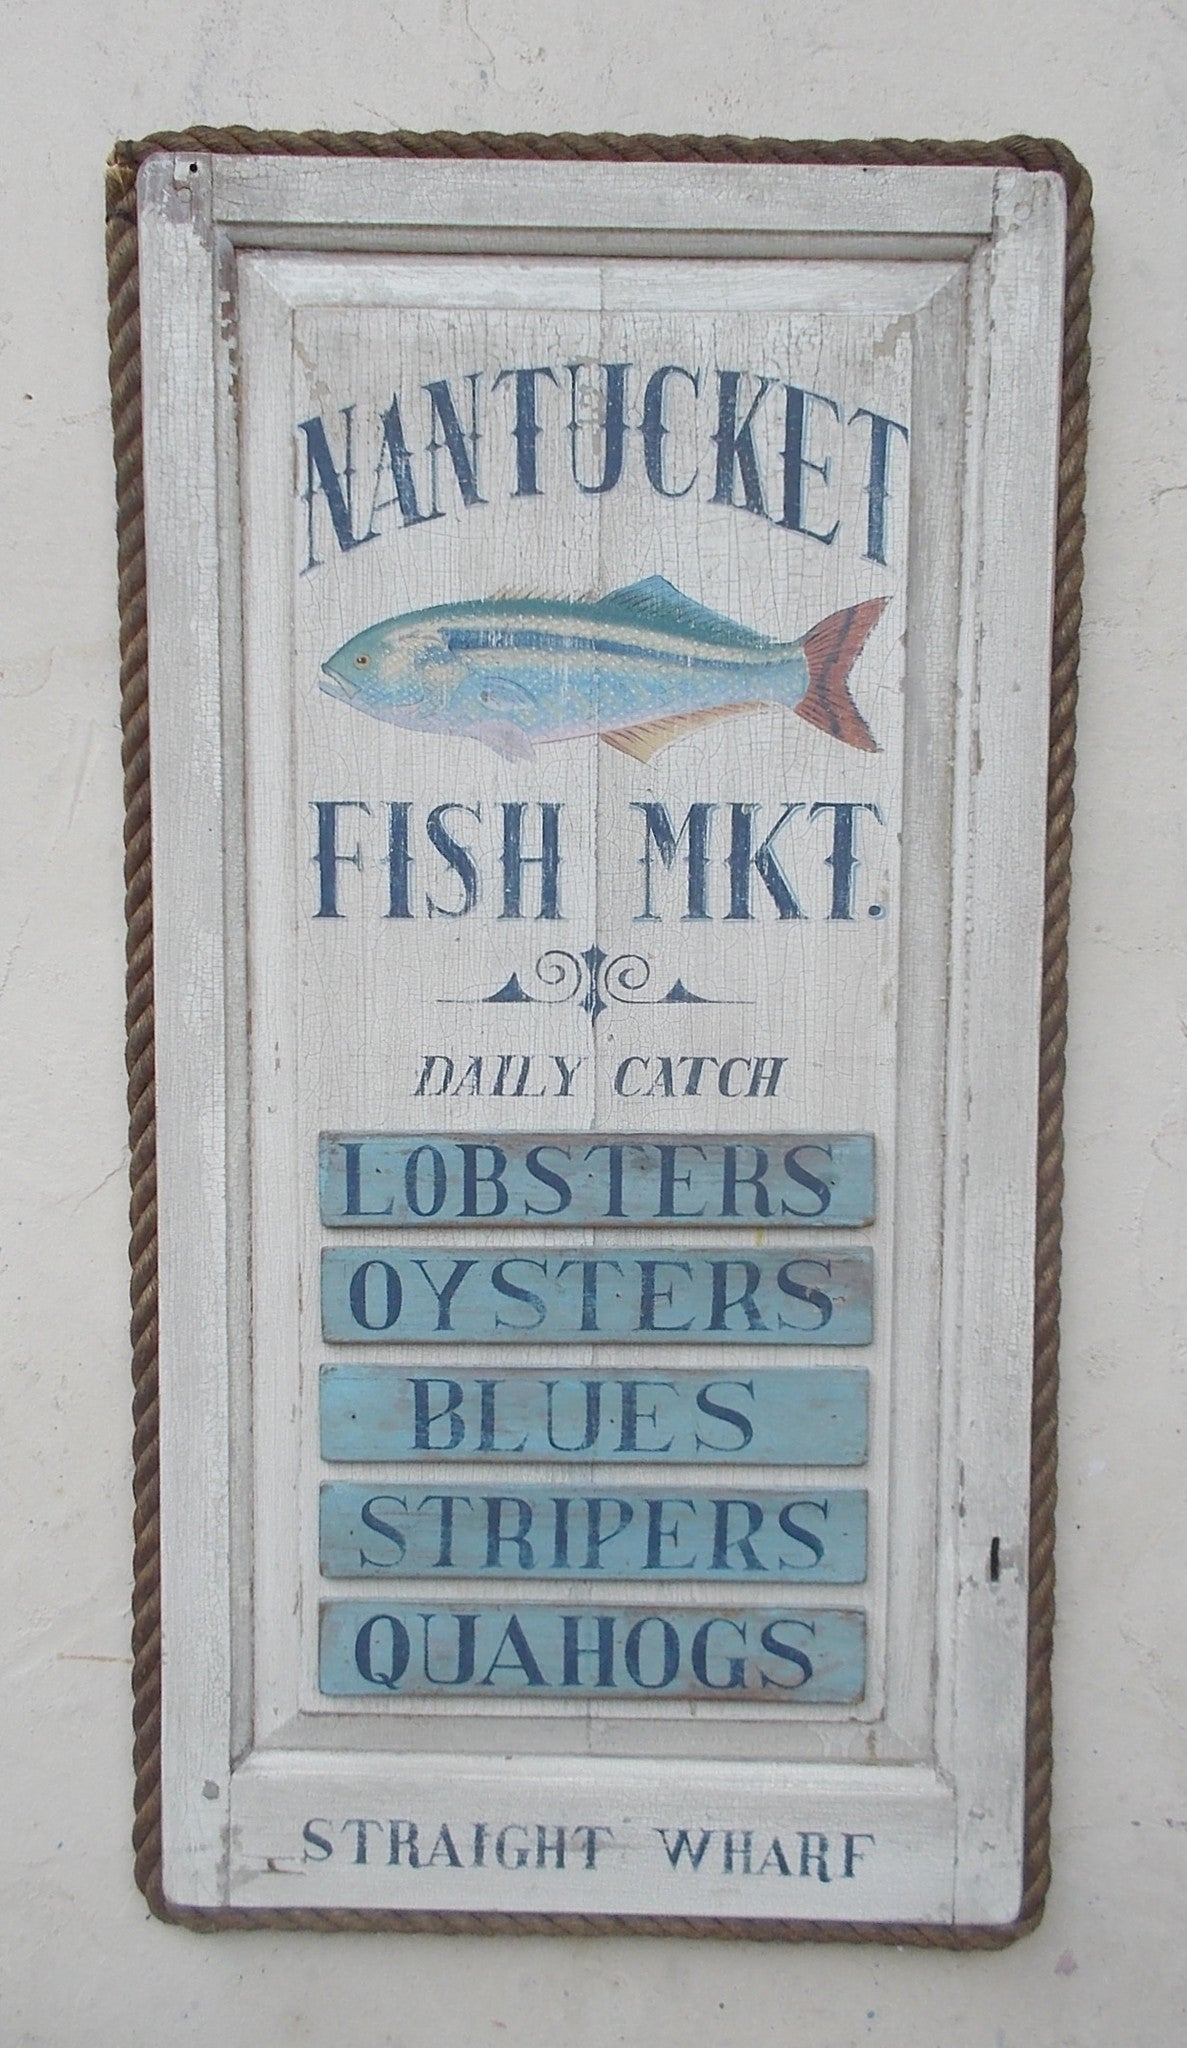 Nantucket Fish Market